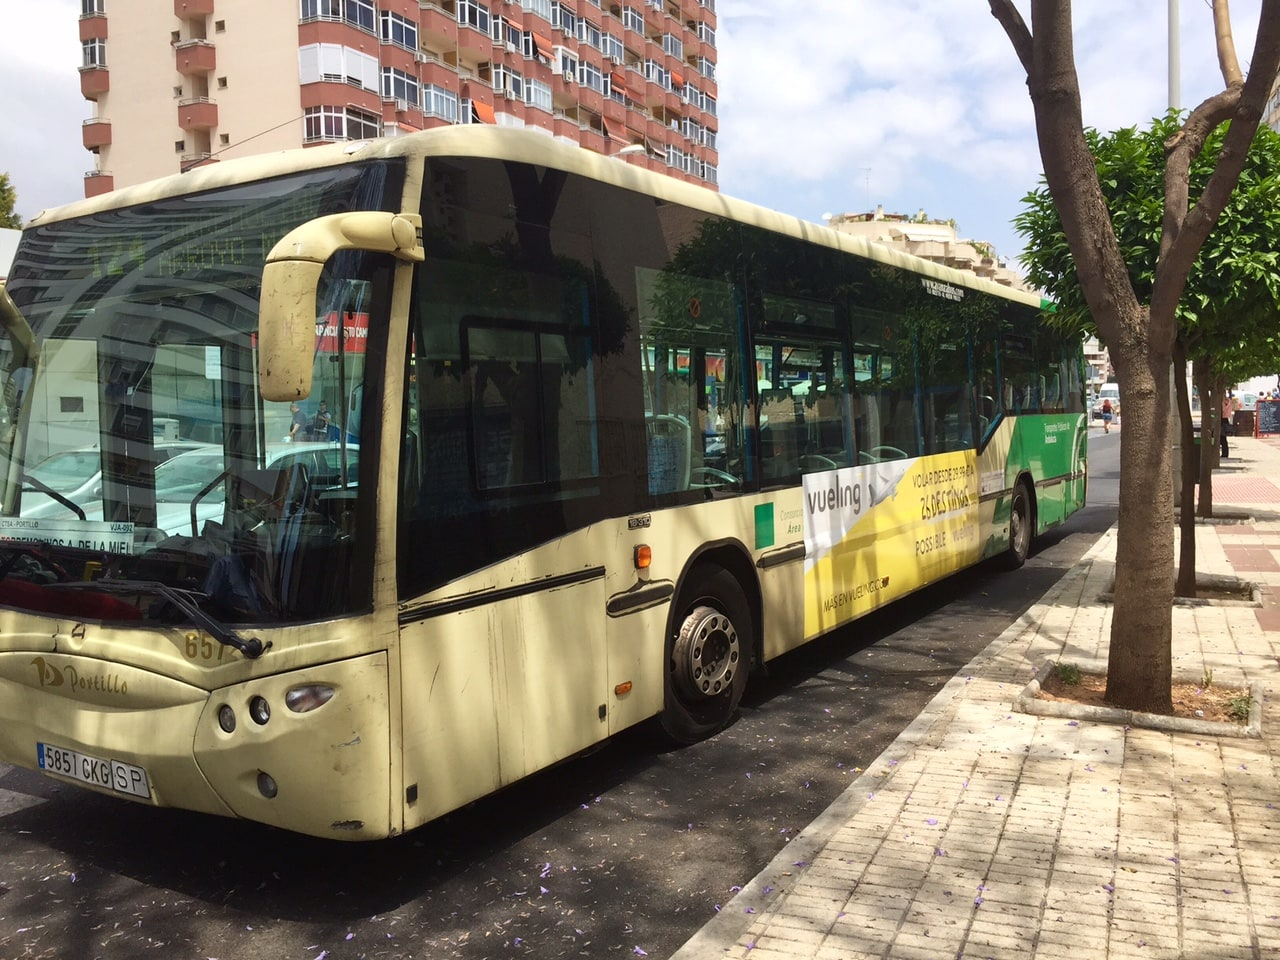 Bus advertising campaign along Costa del Sol for Vueling